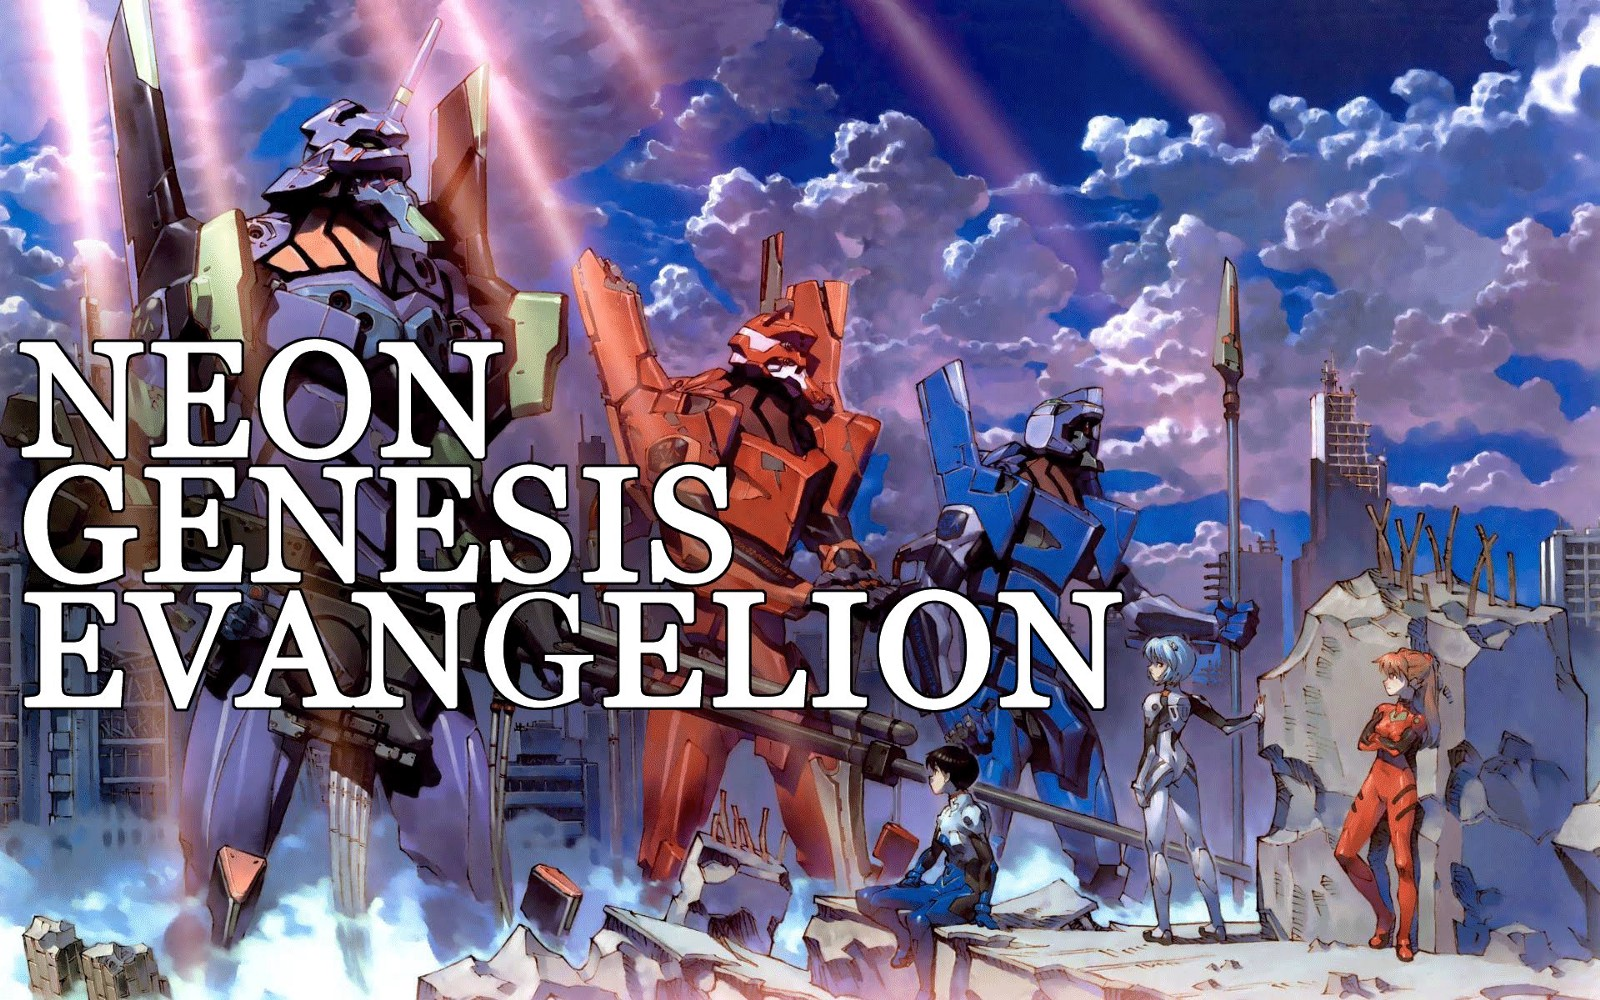 Evangelion Explained Scott Gladstein Medium